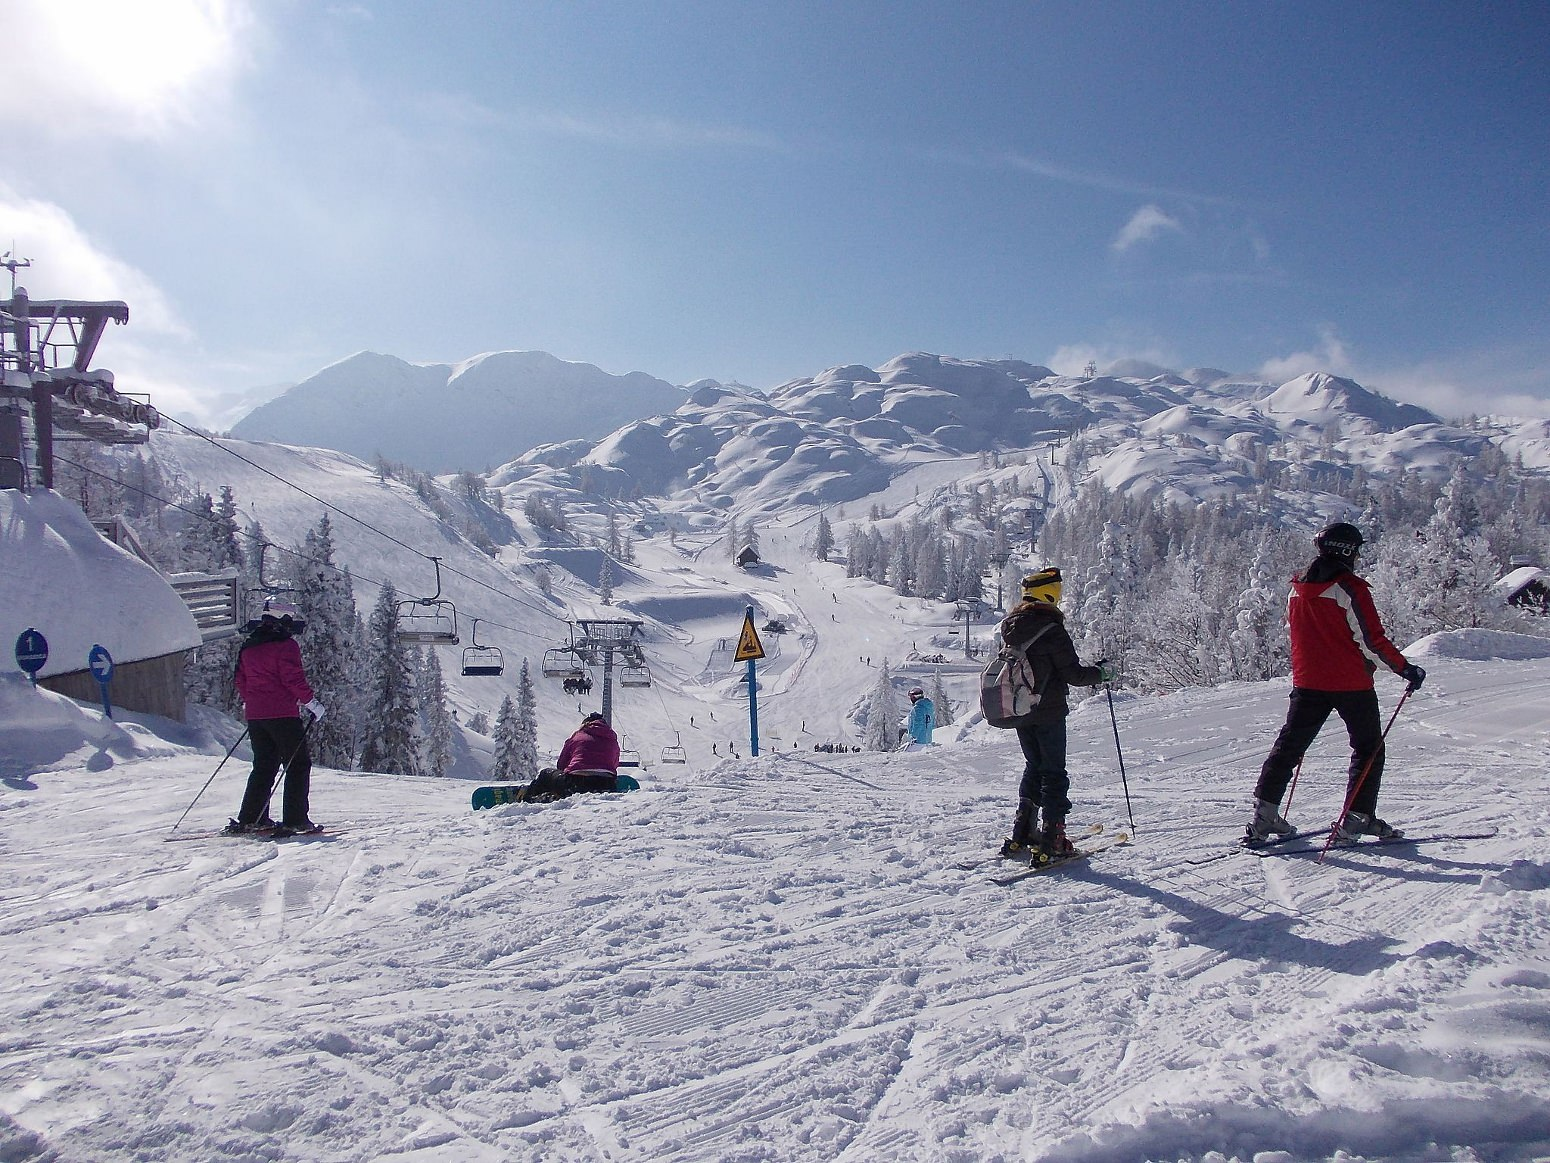 Vogel_Ski_resort_Slovenia.jpg